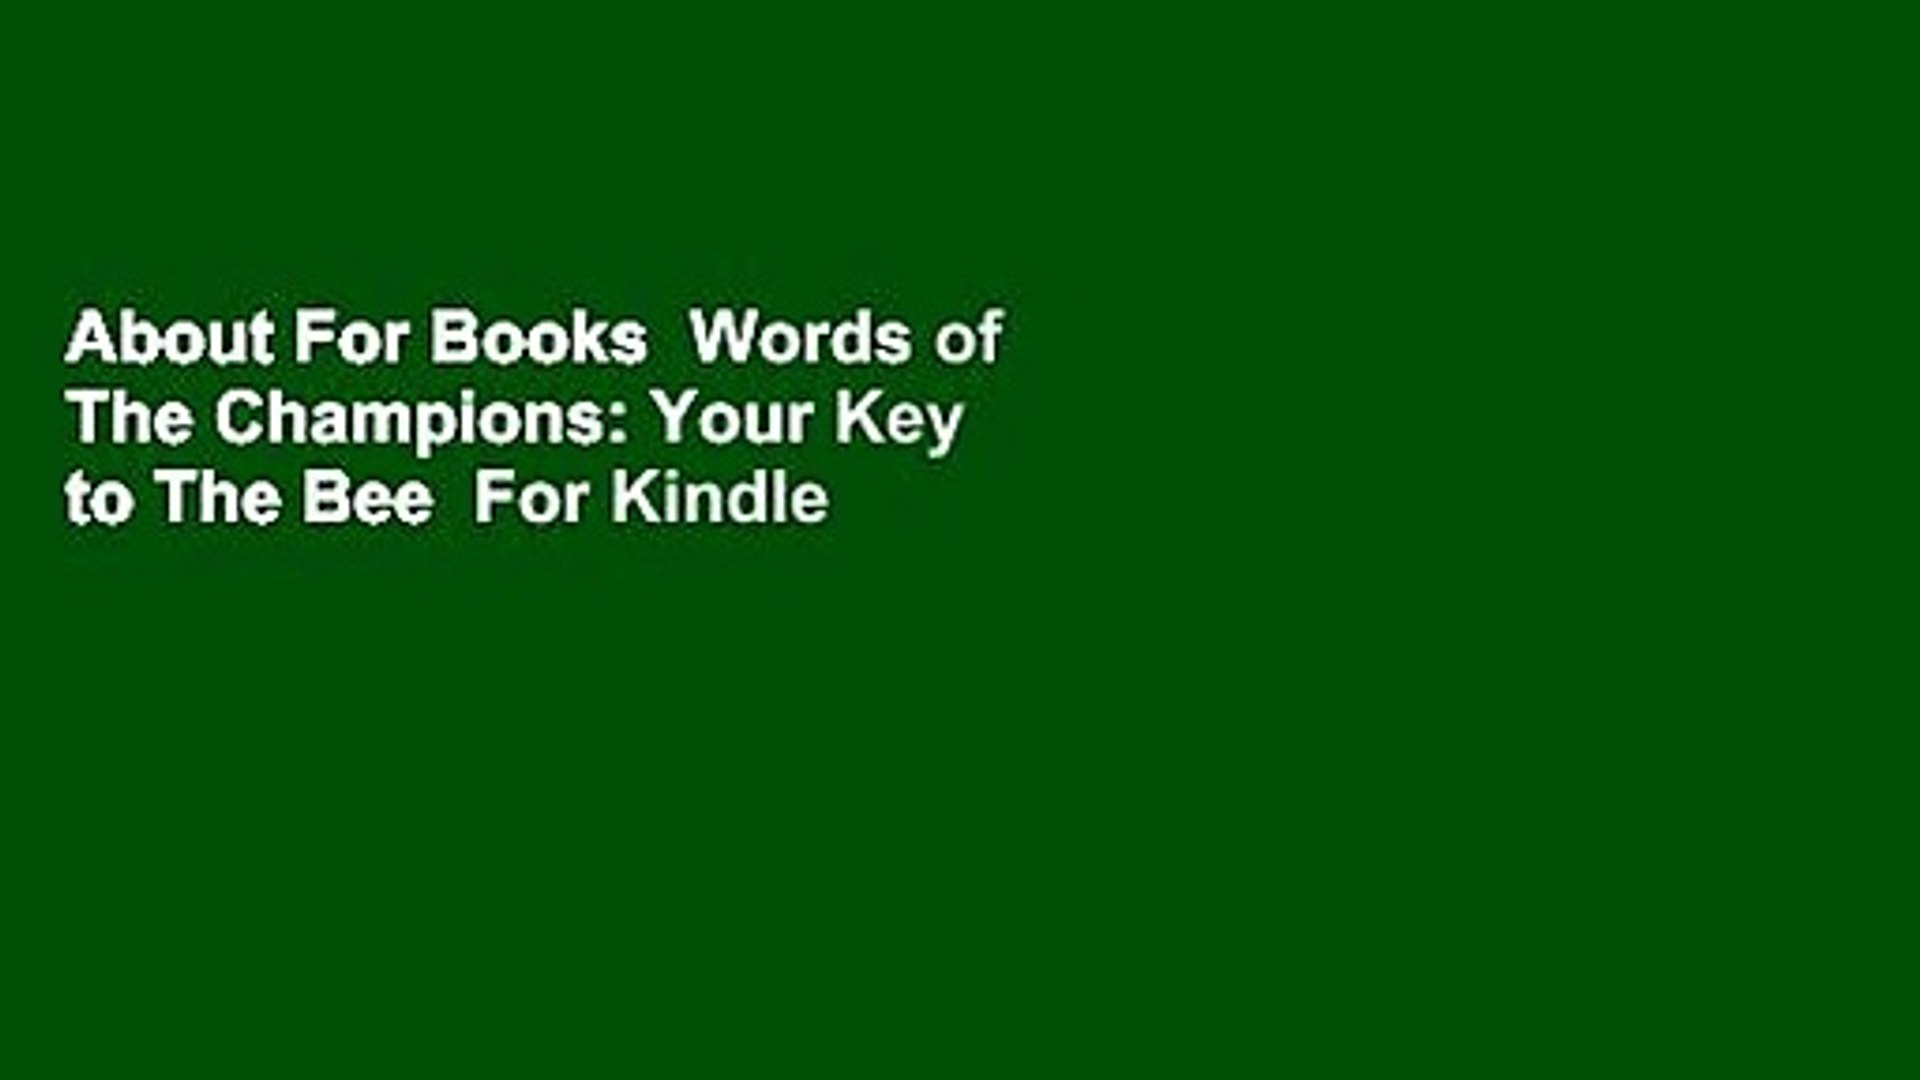 450 Word School Spelling Bee Study List 2020.About For Books Words Of The Champions Your Key To The Bee For Kindle